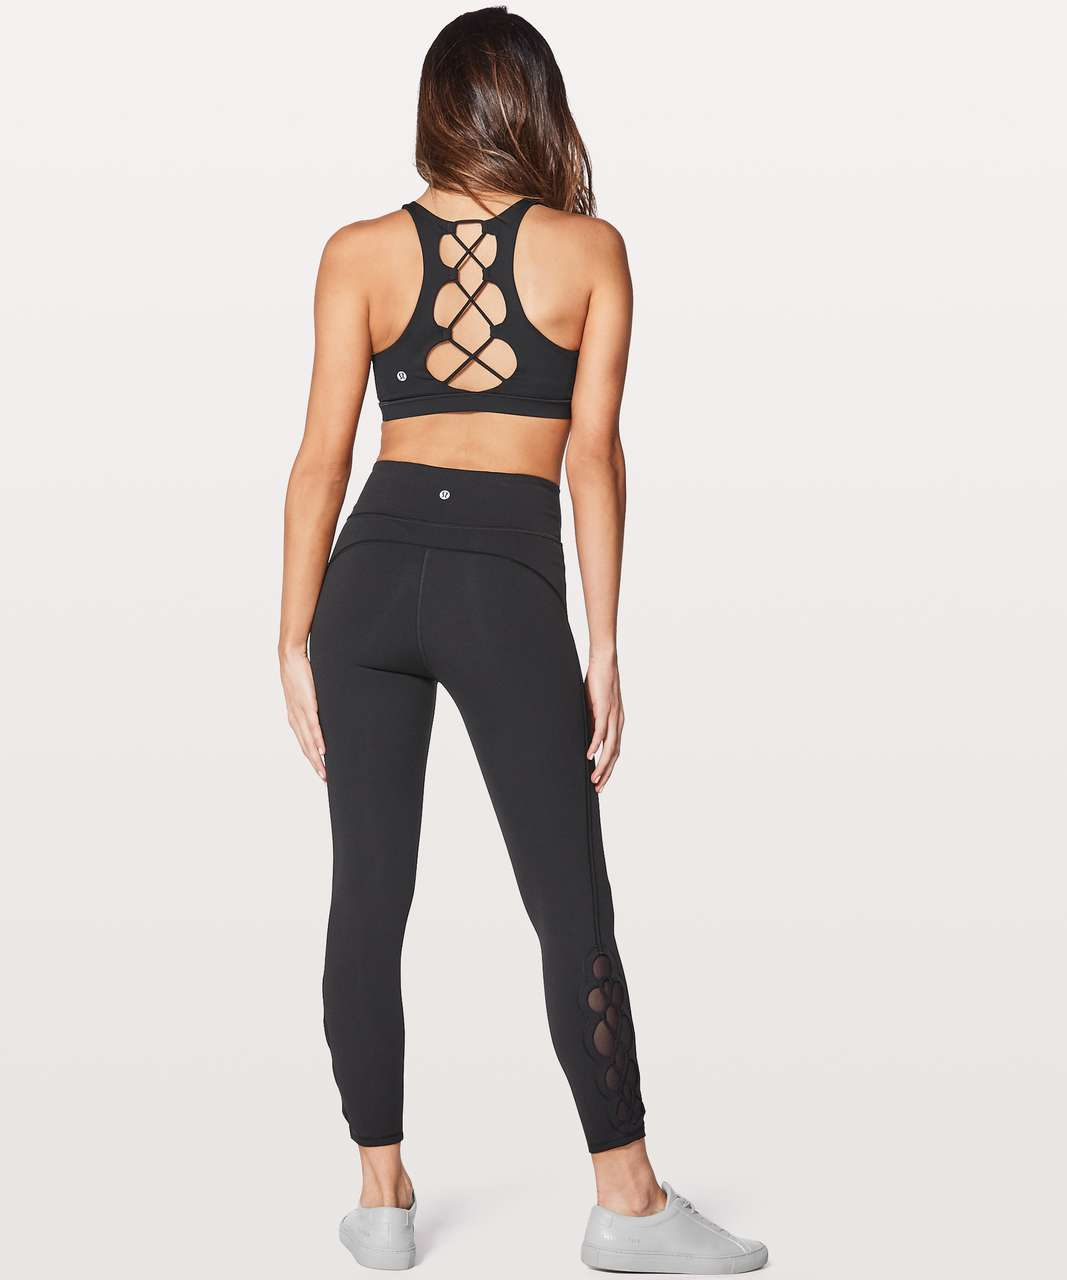 "Lululemon Tied To It 7/8 Tight 25"" - Black"